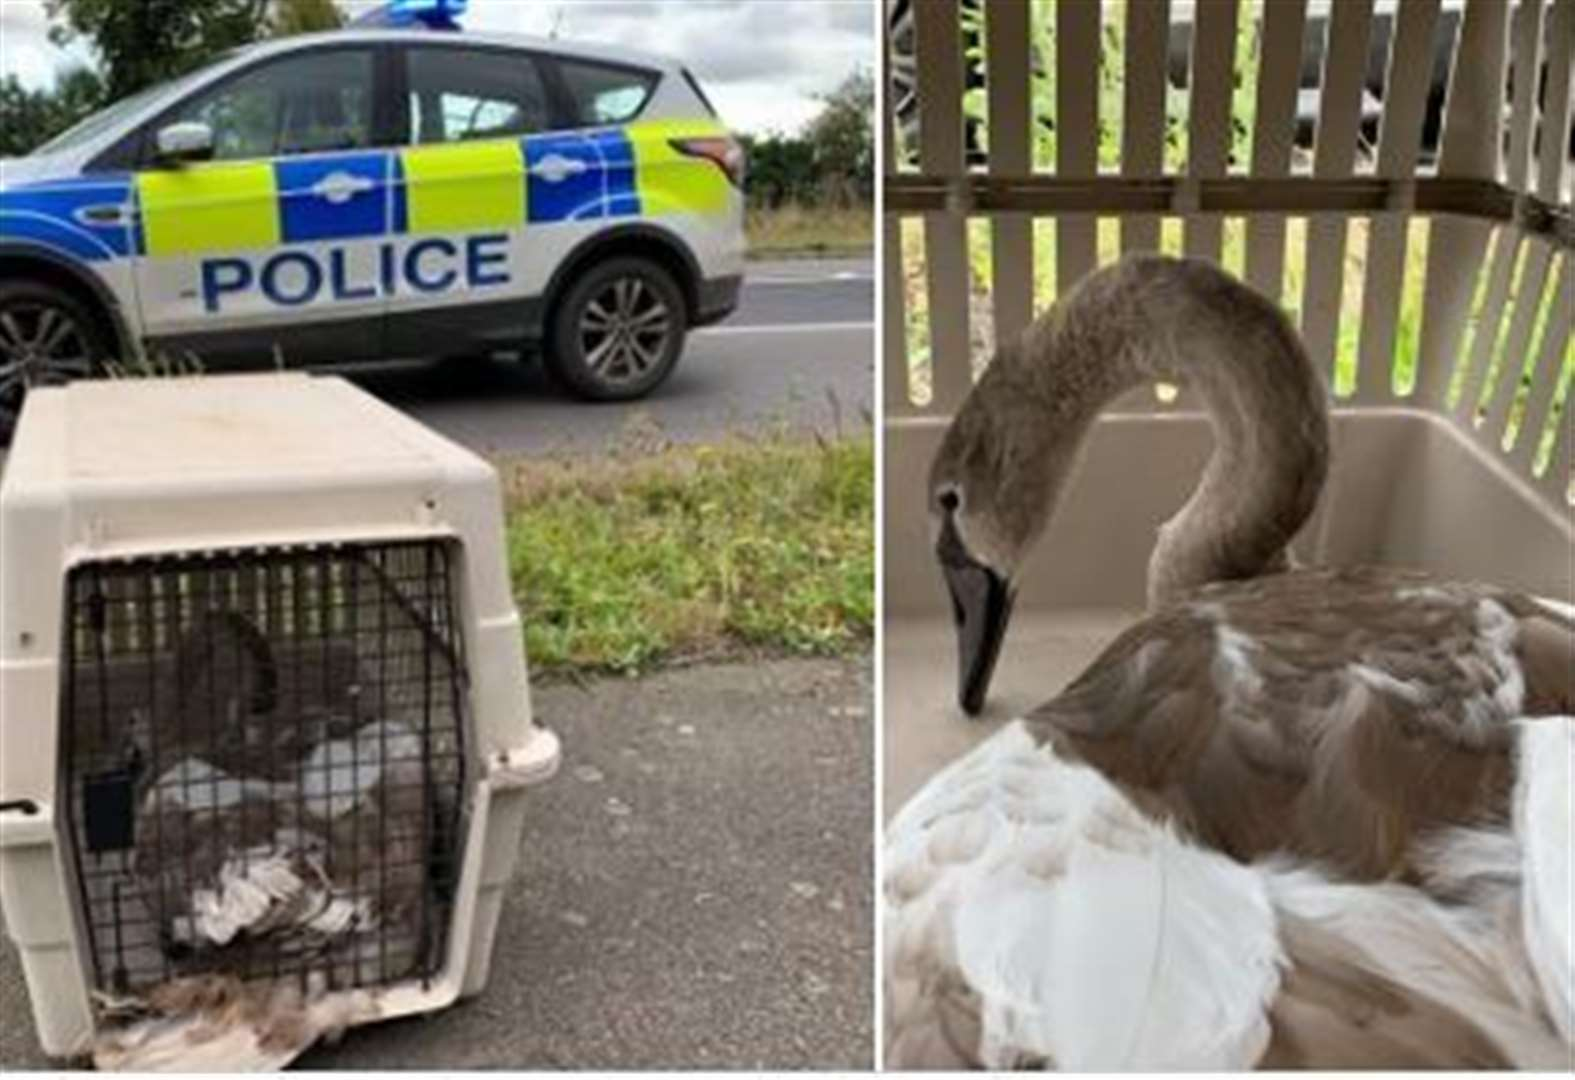 Hot Fuzz style capture of swan